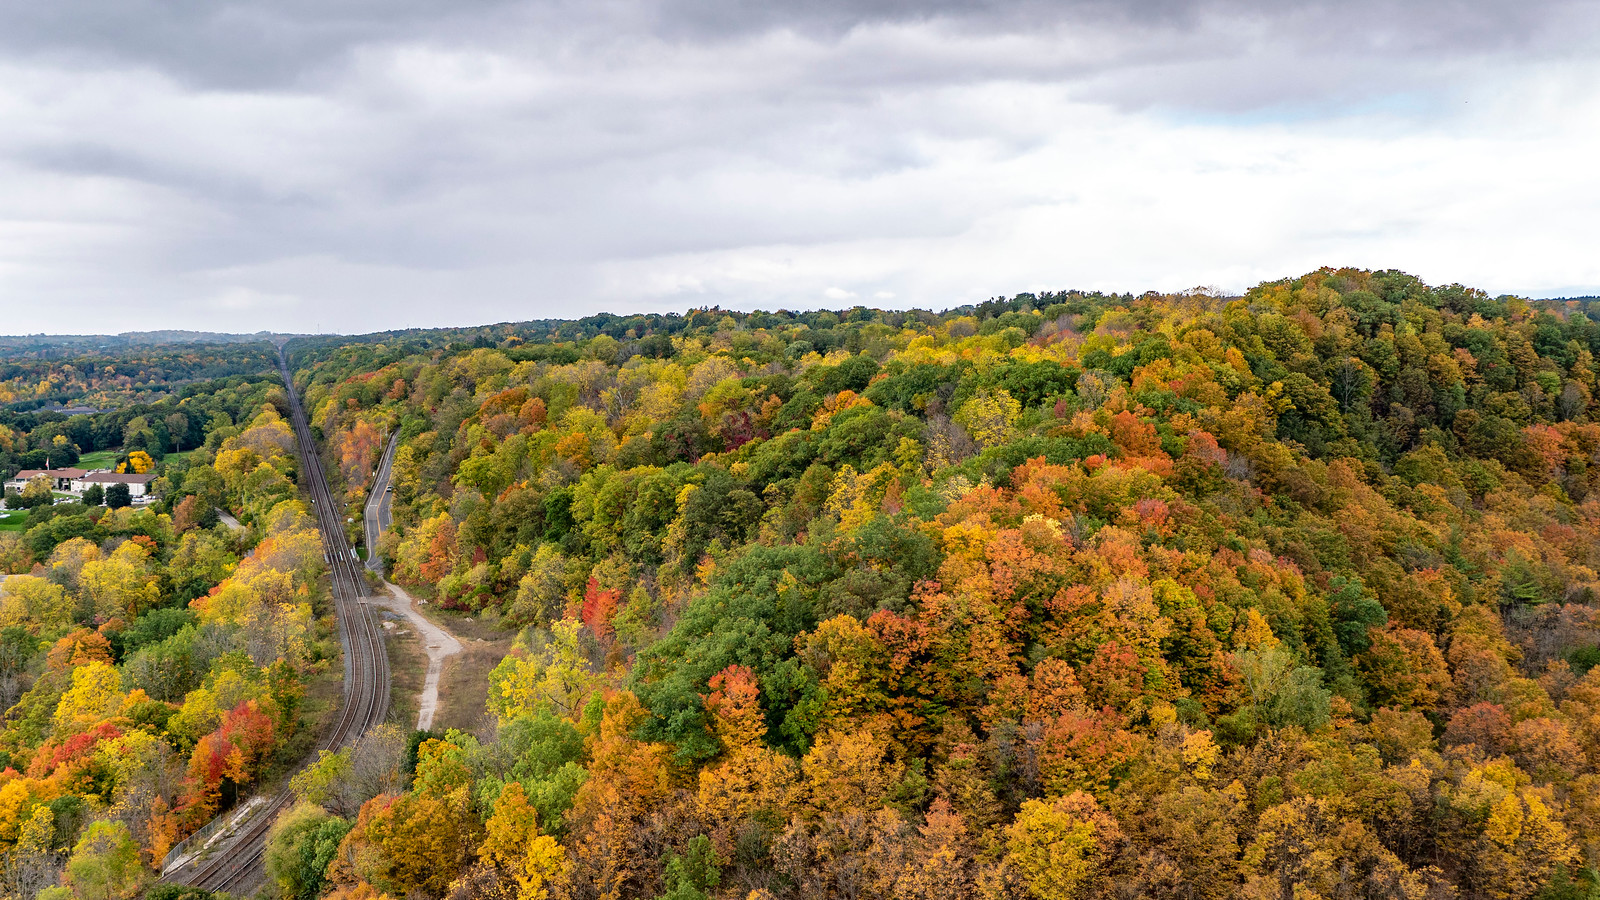 Dundas Peak, the Spencer Gorge, and the train tracks in the fall